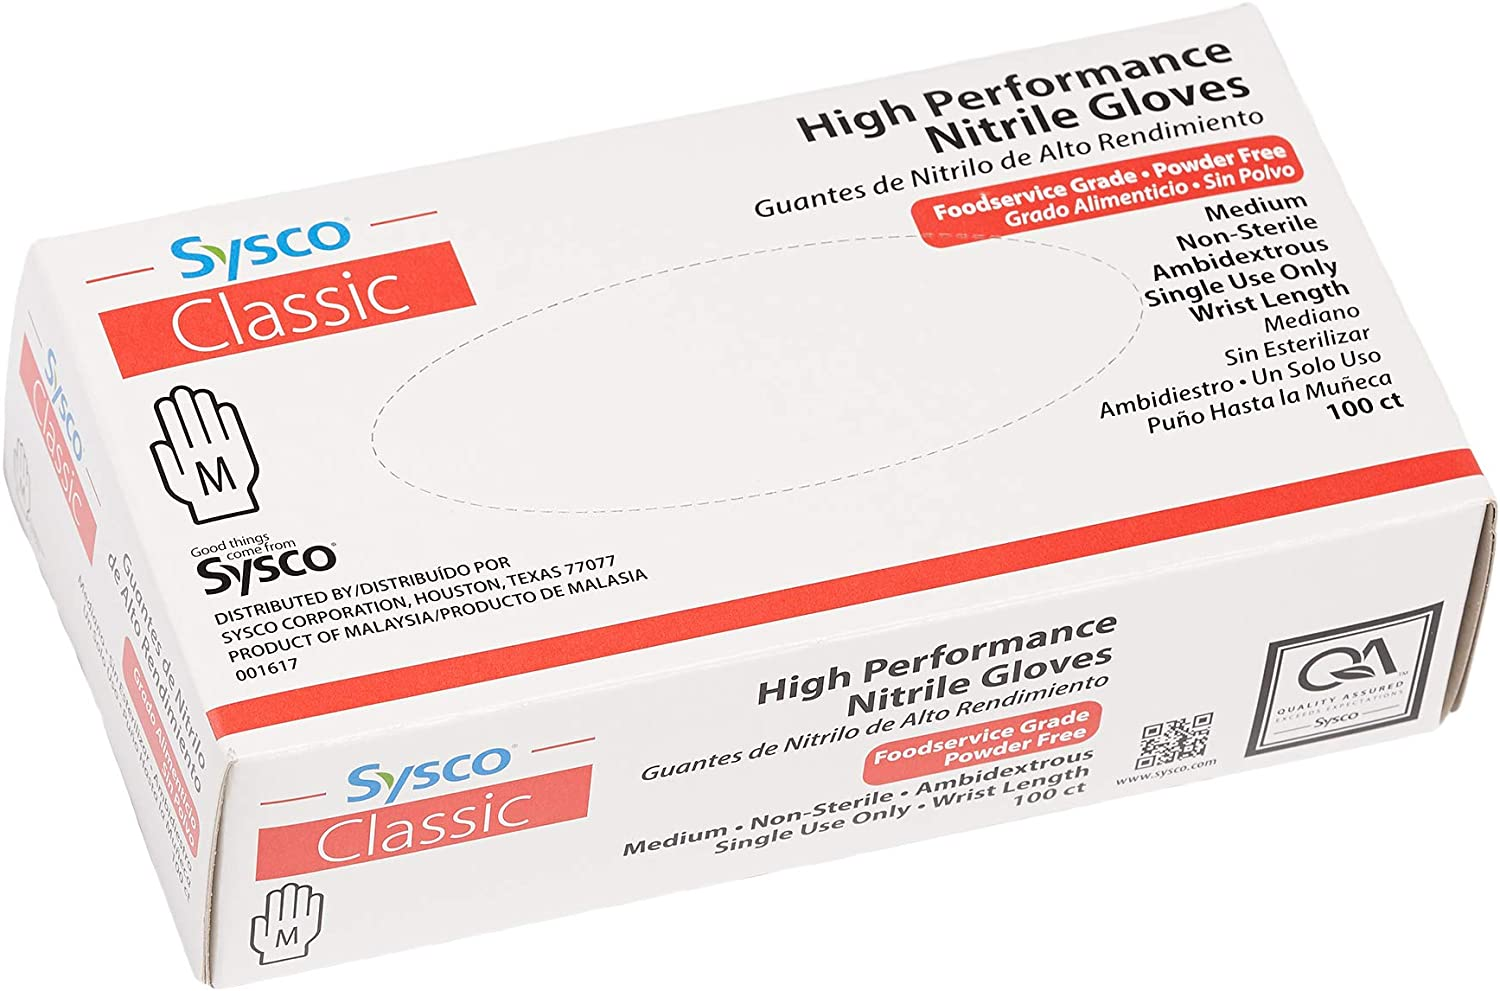 Sysco - High Performance Nitrile Gloves (100 Count) (Size Medium)